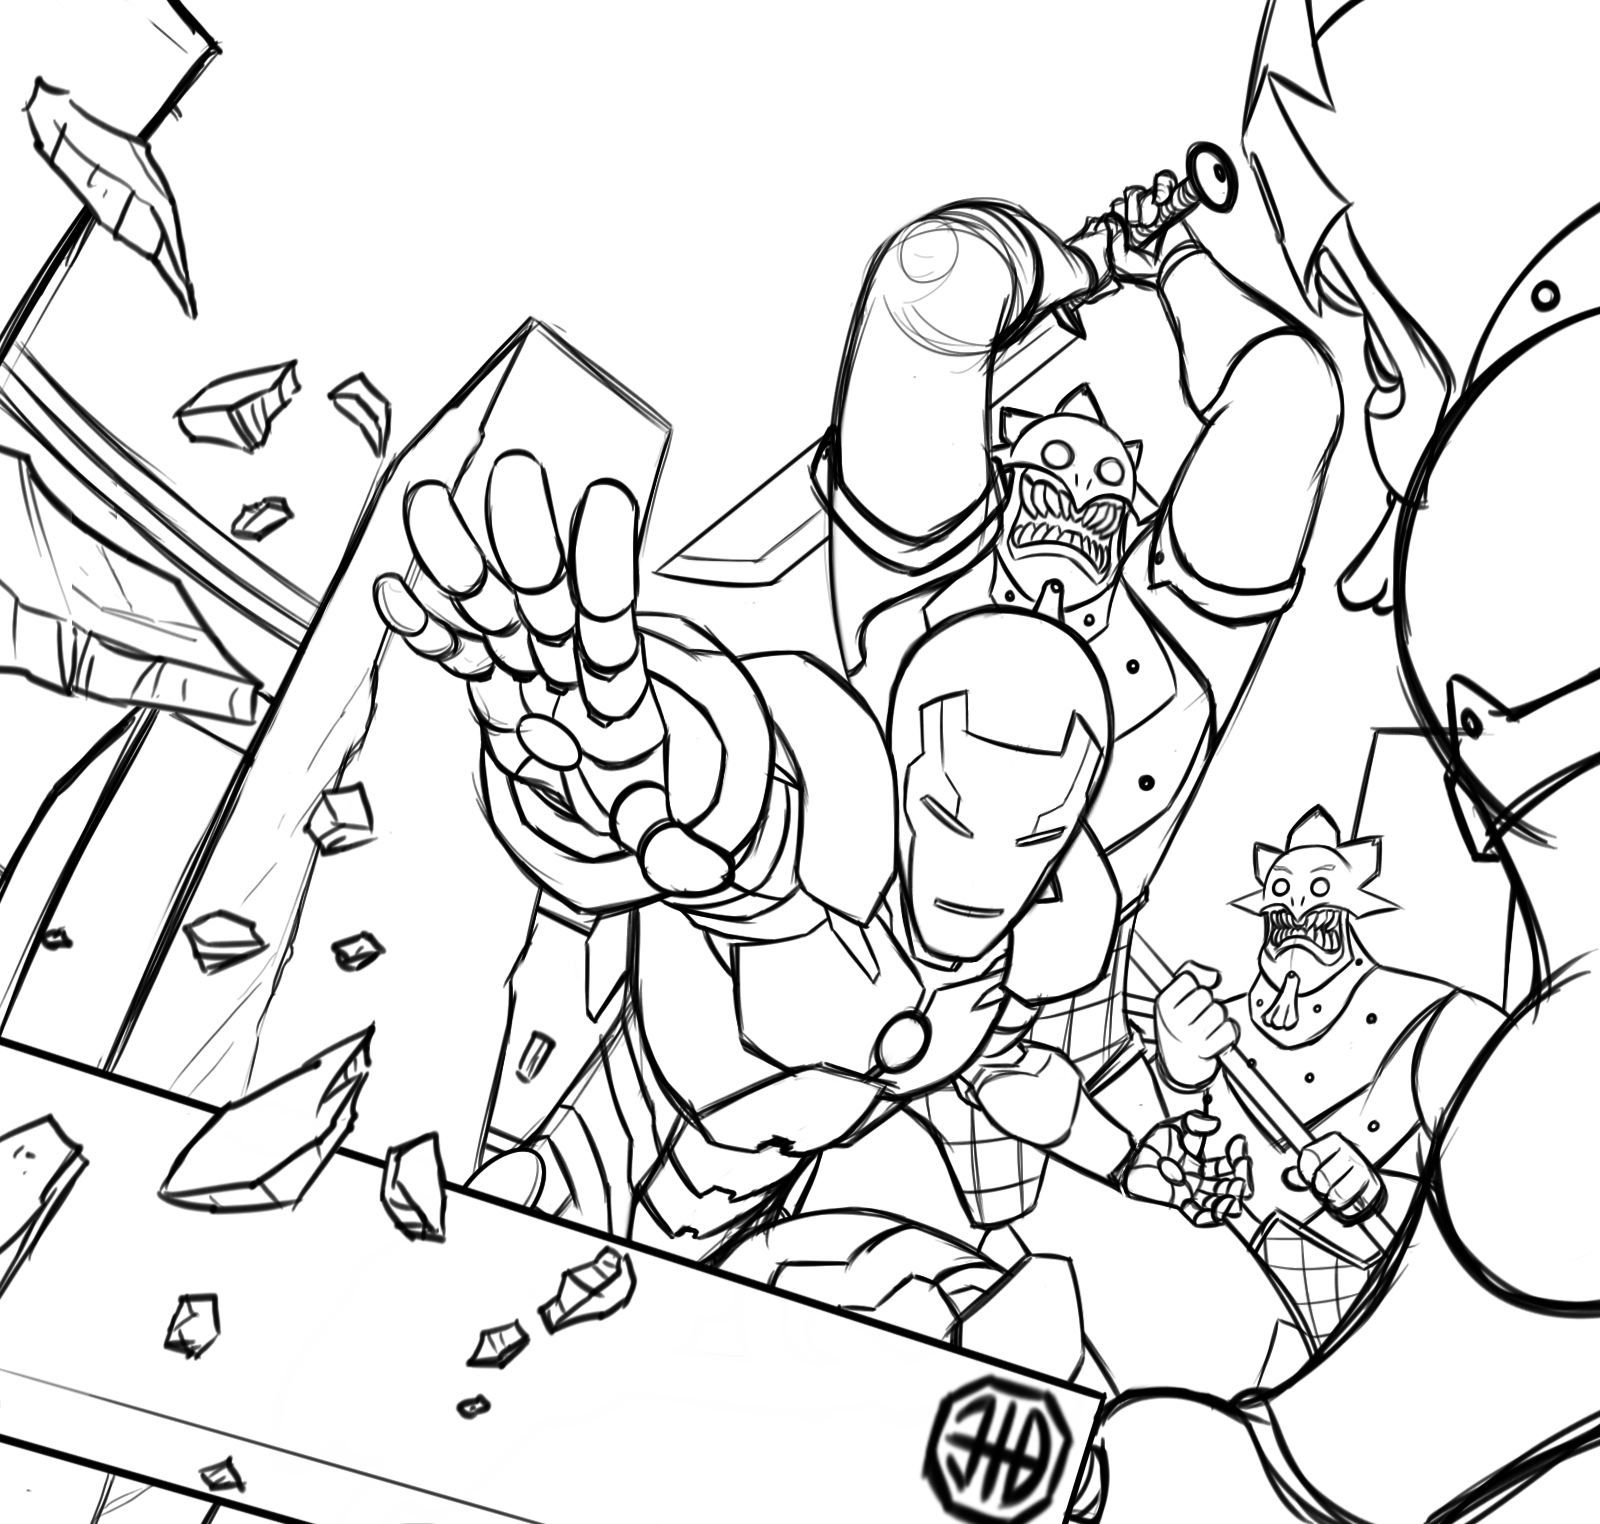 Iron Man | Avengers coloring pages, Avengers coloring ...